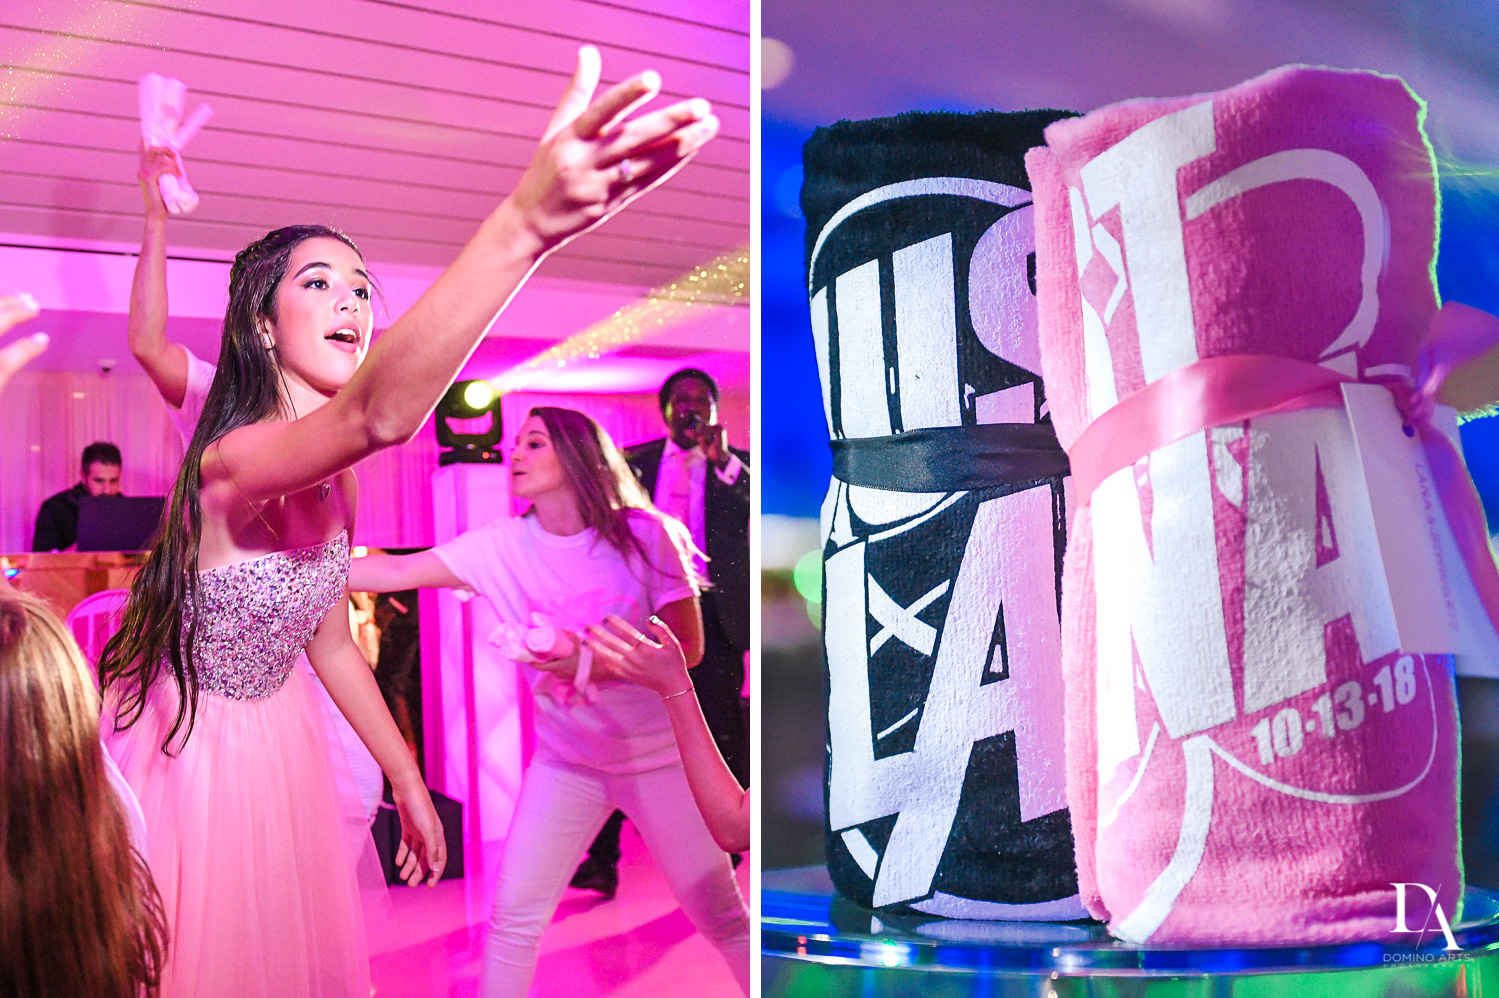 Fun gifts at Bat Mitzvah at Saint Andrews Country Club South Florida by Domino Arts Photography